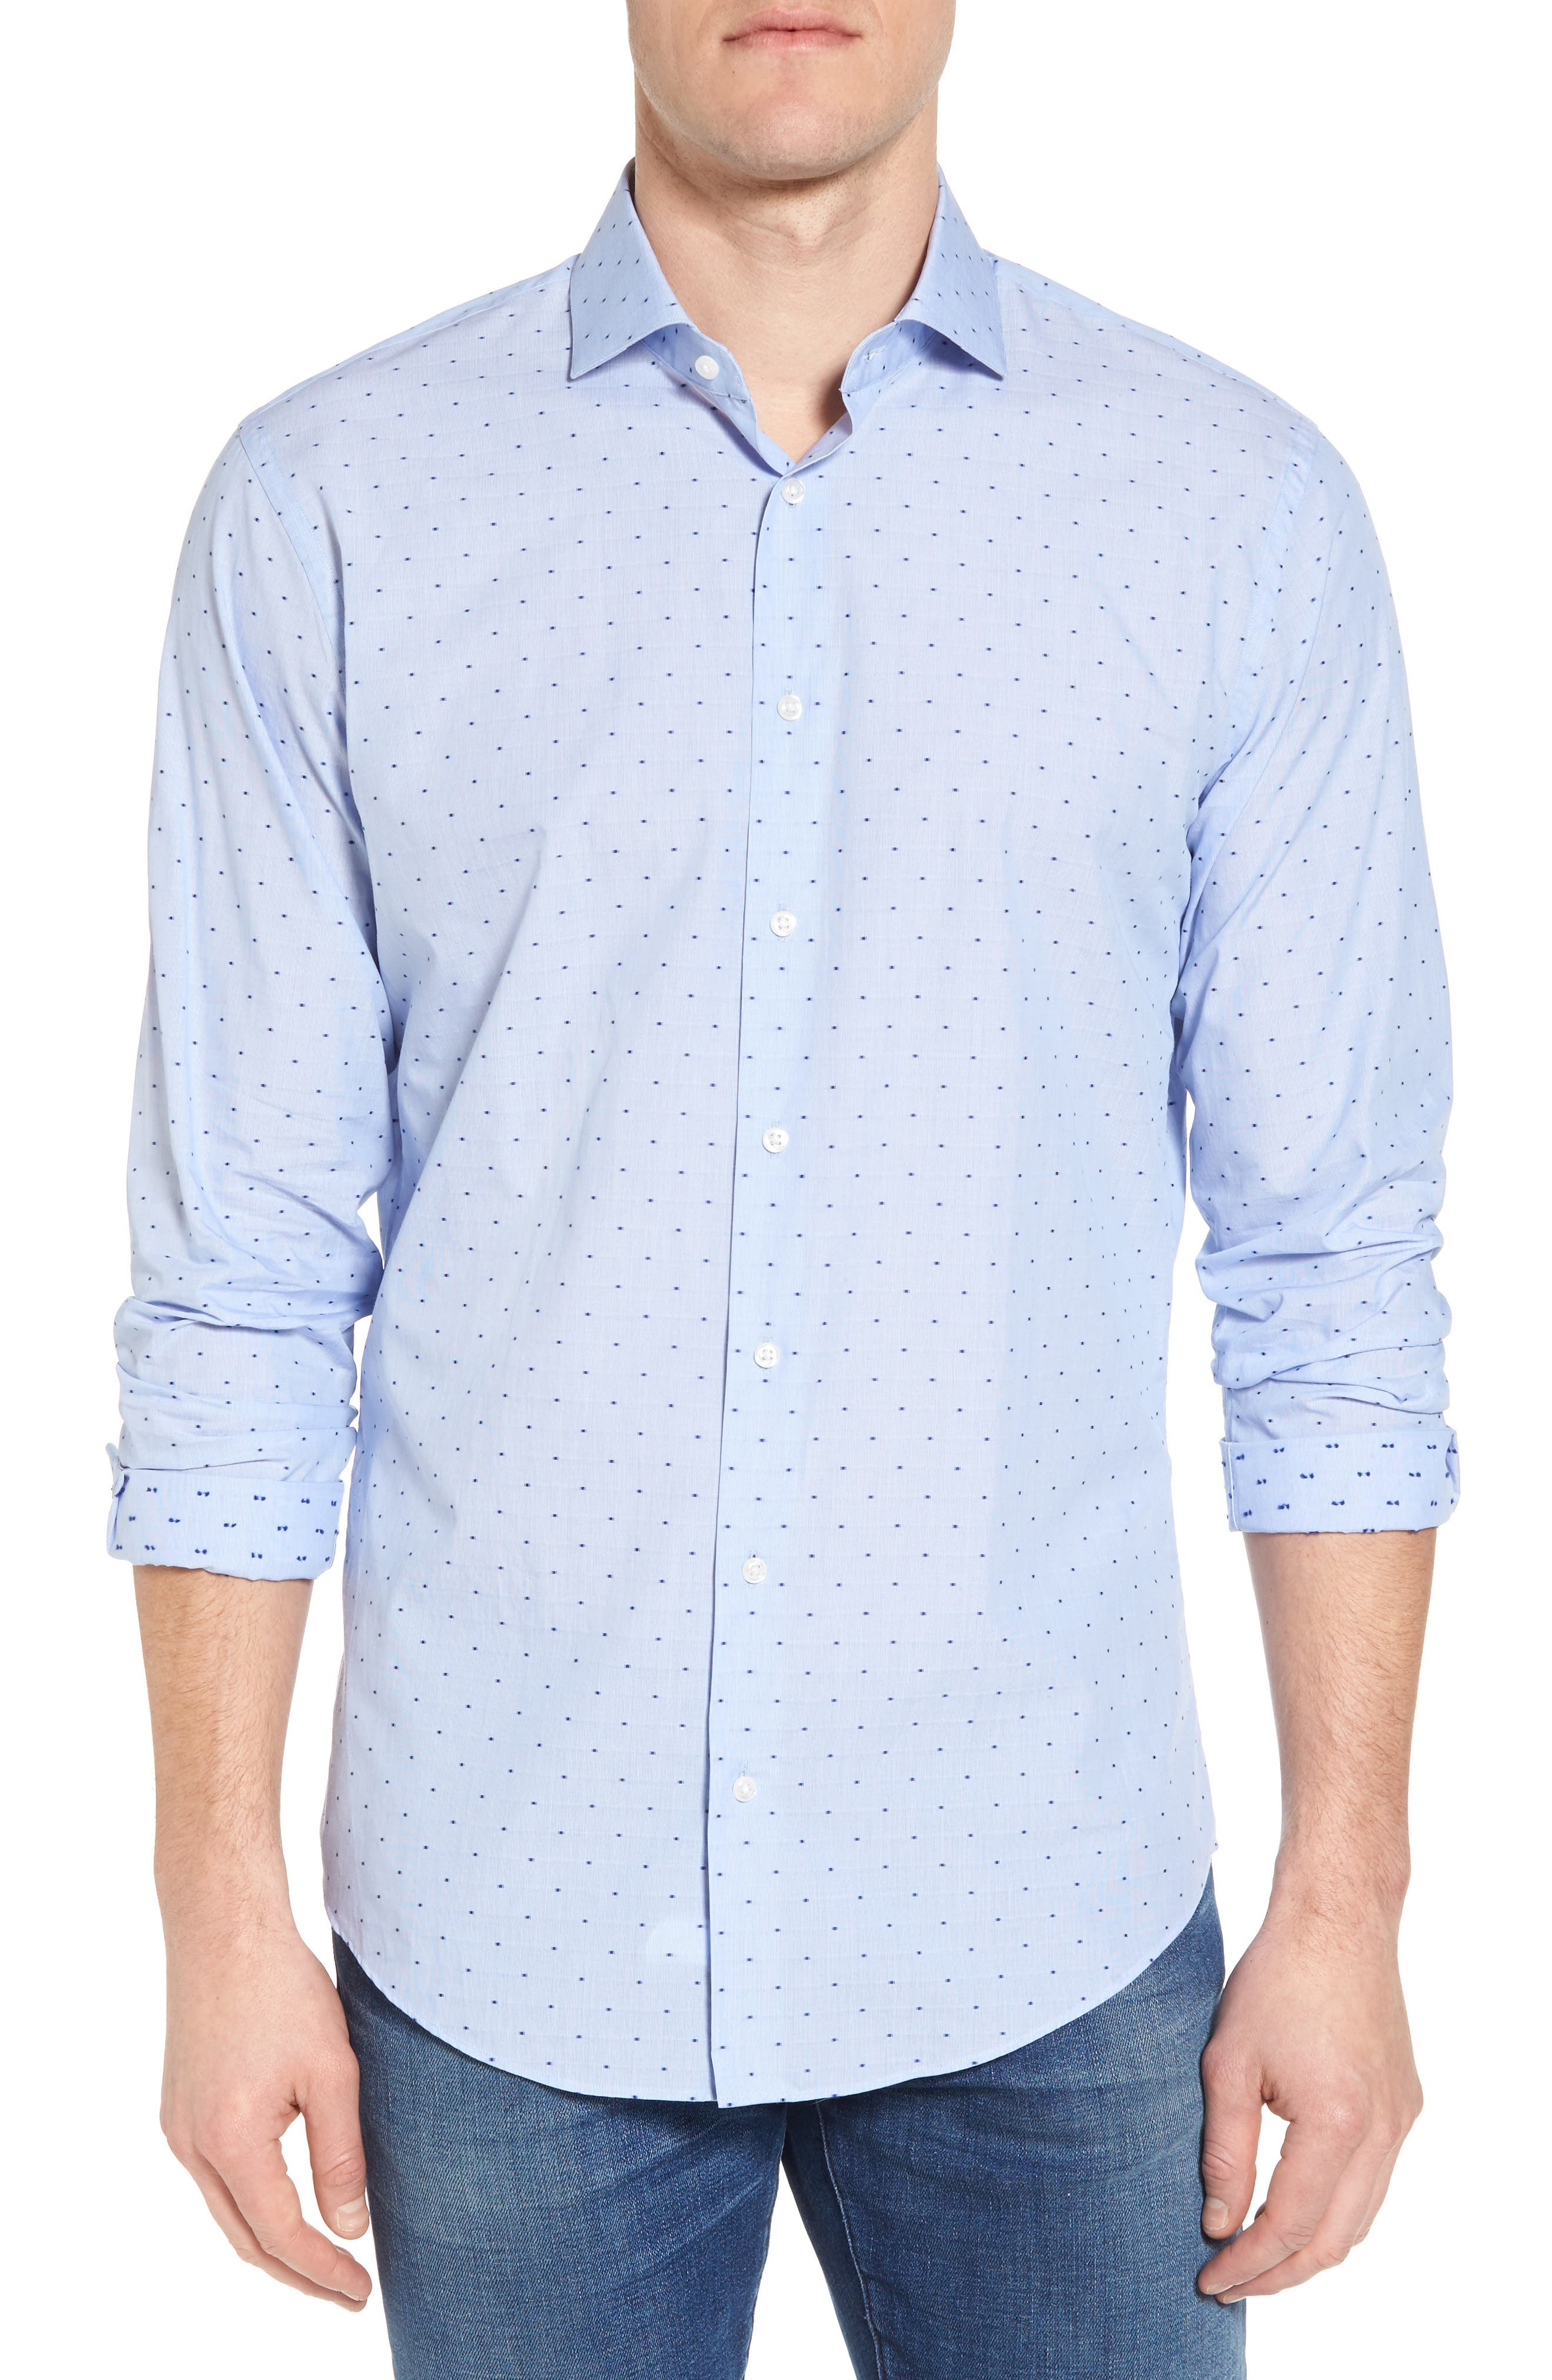 Trim Fit Dot Dress Shirt,                             Main thumbnail 1, color,                             450